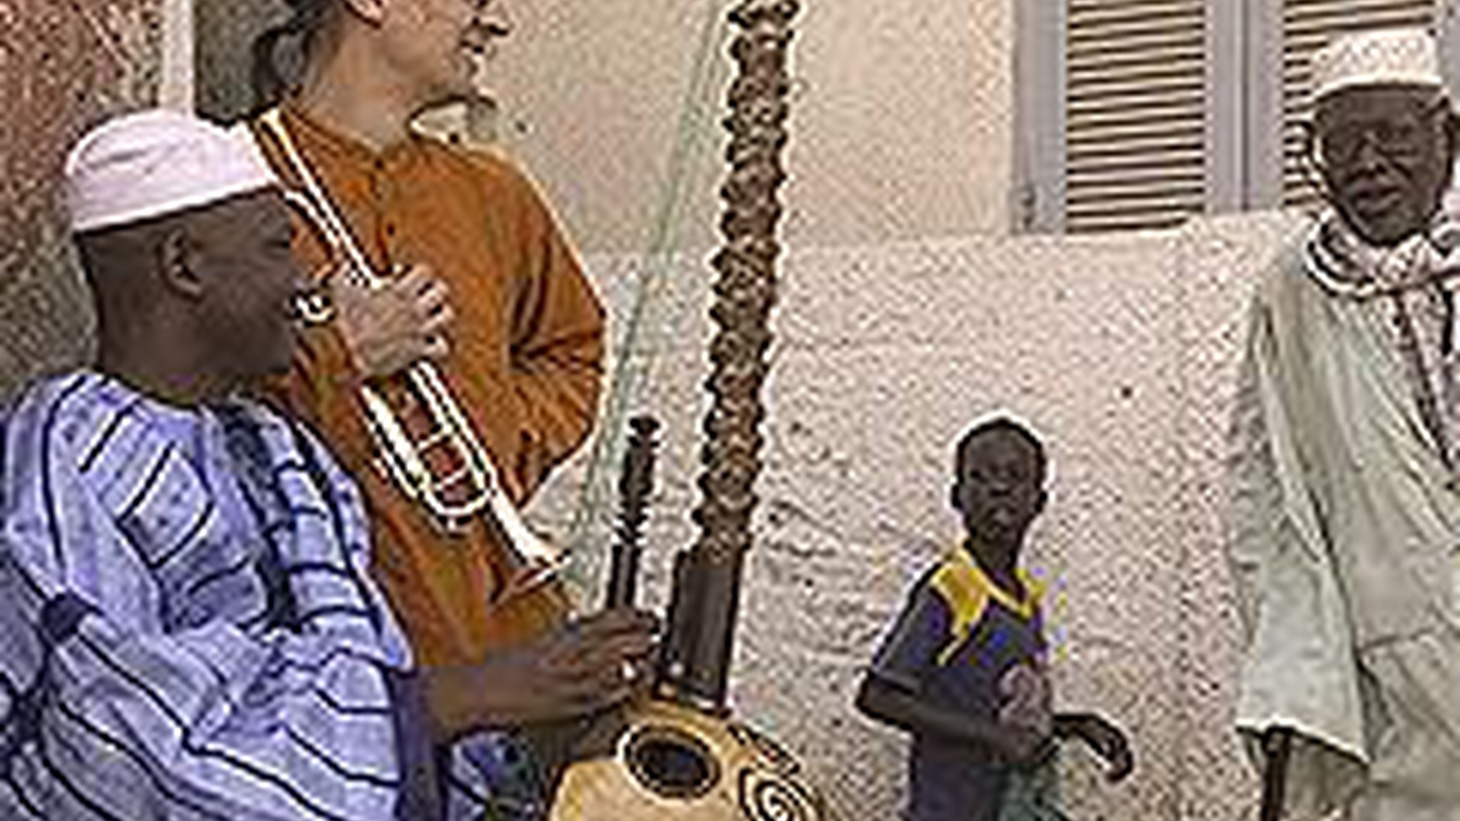 ...from Sira.   Senegalese singer and kora player Ablaye Cissoko and German born trumpeter Volker Goetze have a lot in common, including a keen ear for the other's rich culture and the griot tradition of storytelling as an oral history.